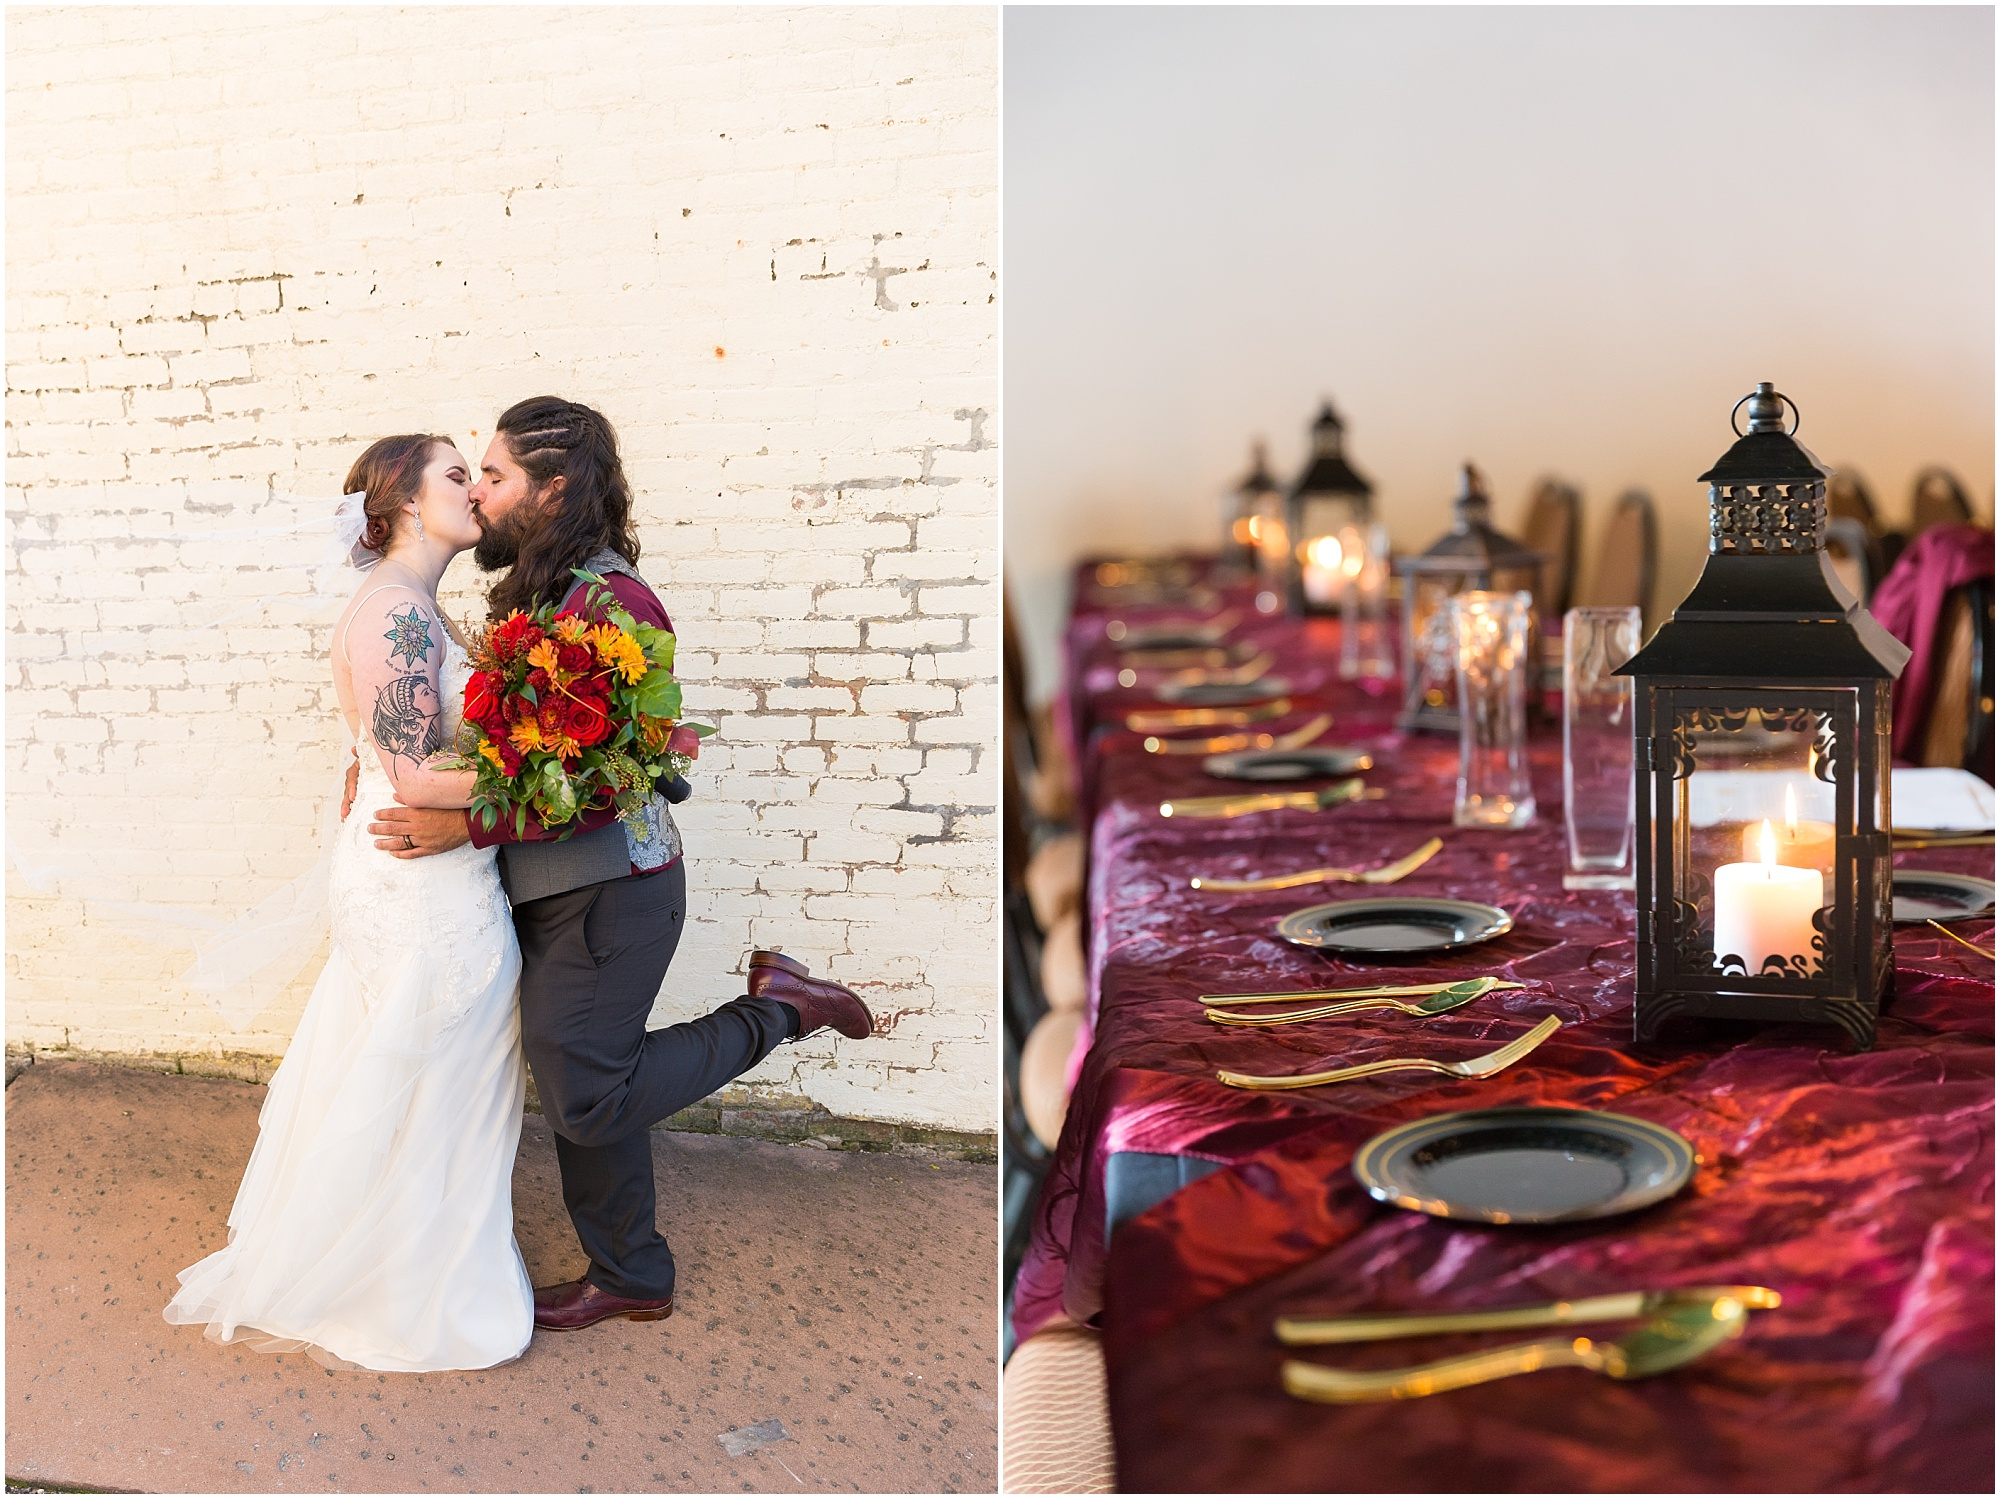 Groom kicks up his foot while kissing bride - Fall wedding in Hillsboro, TX - Jason & Melaina Photography - http://jasonandmelaina.com